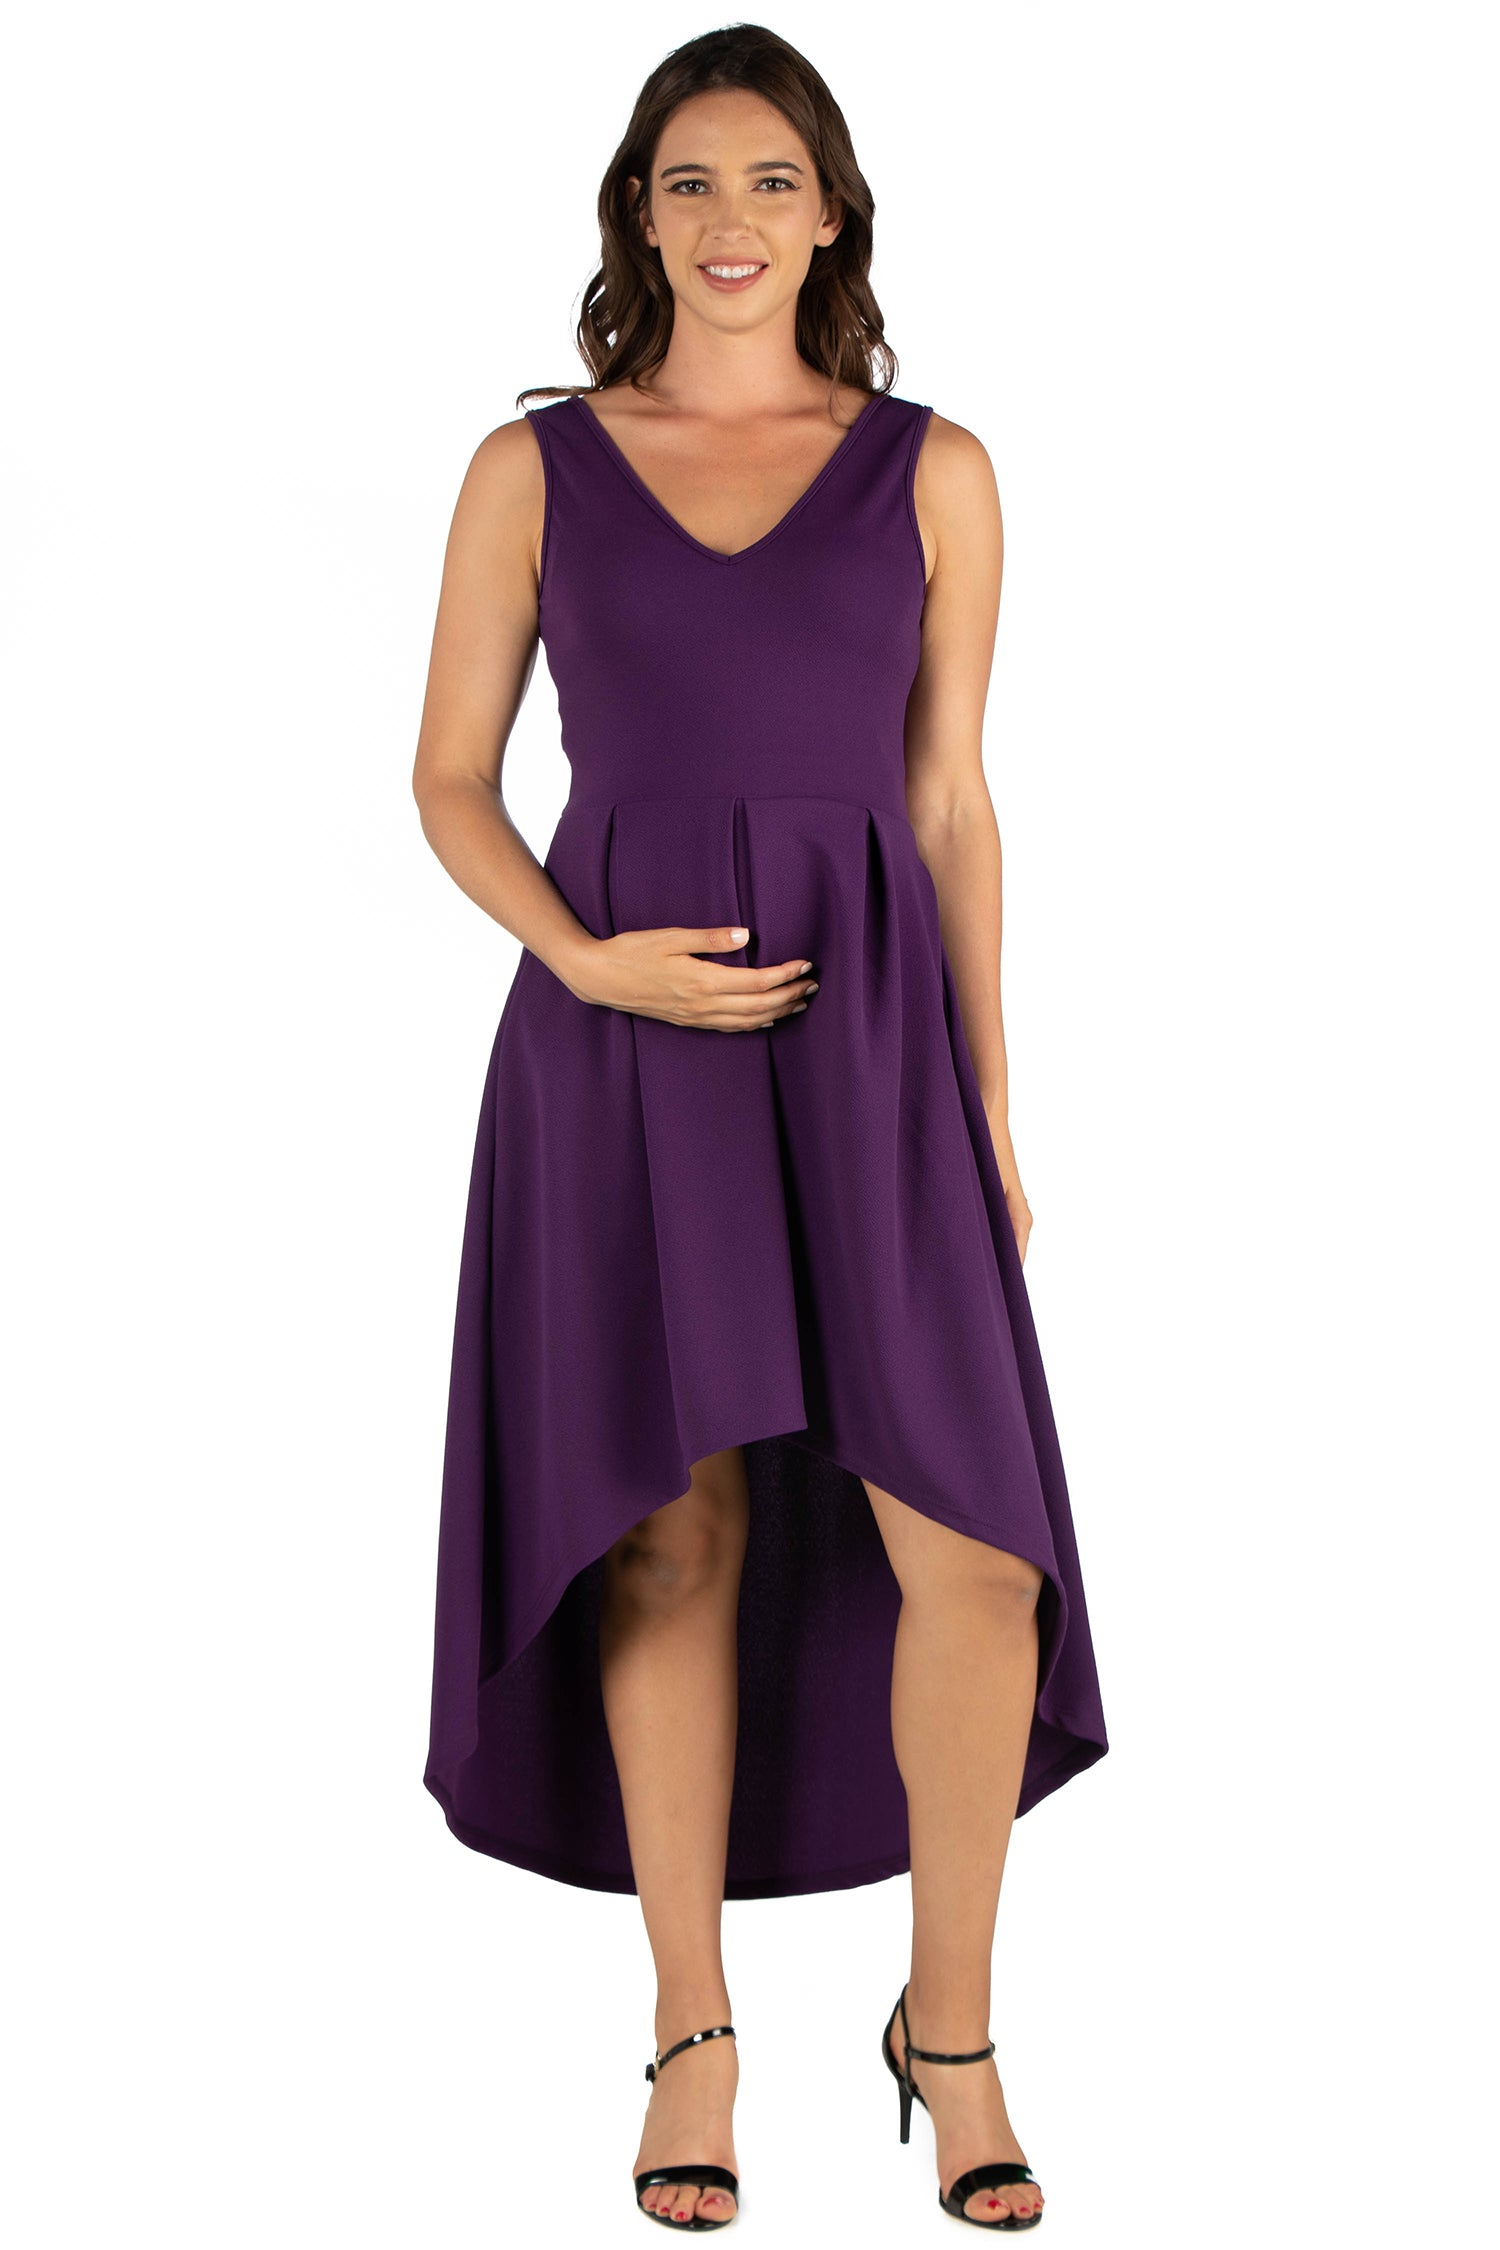 24seven Comfort Apparel High Low Maternity Party Dress with Pockets-DRESSES-24Seven Comfort Apparel-PURPLE-S-24/7 Comfort Apparel